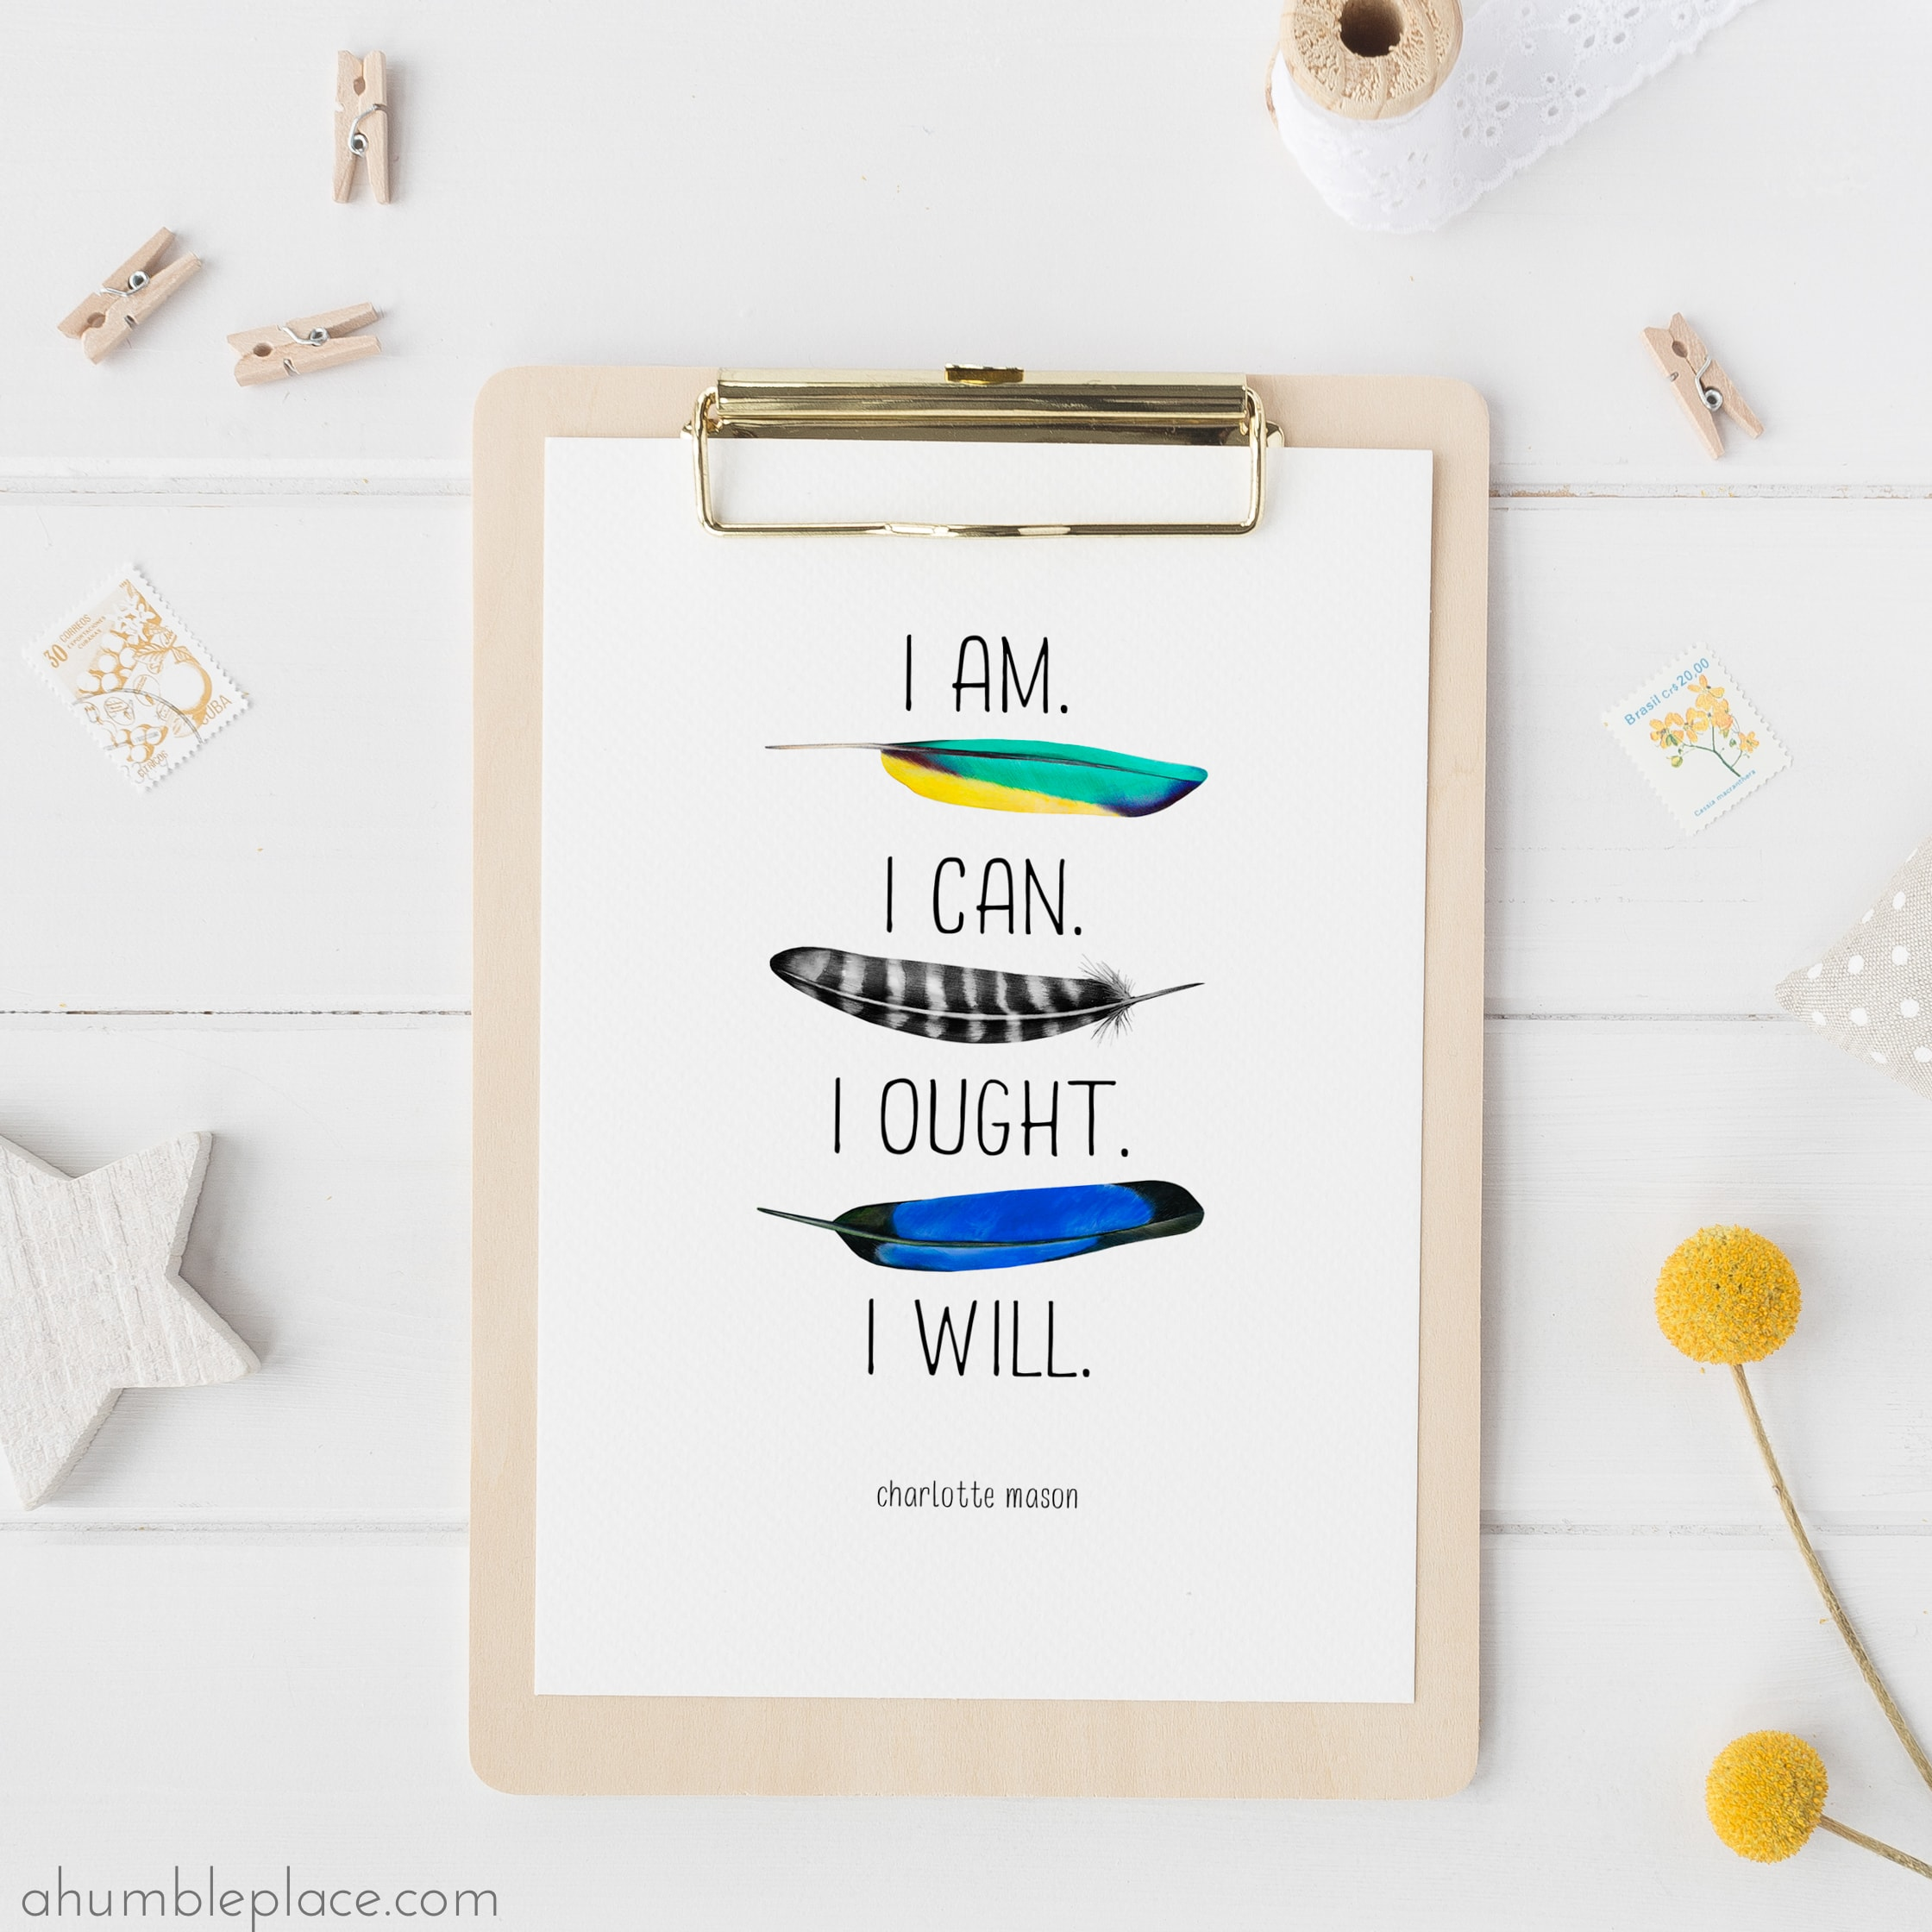 Charlotte Mason Quote Printable Downloads